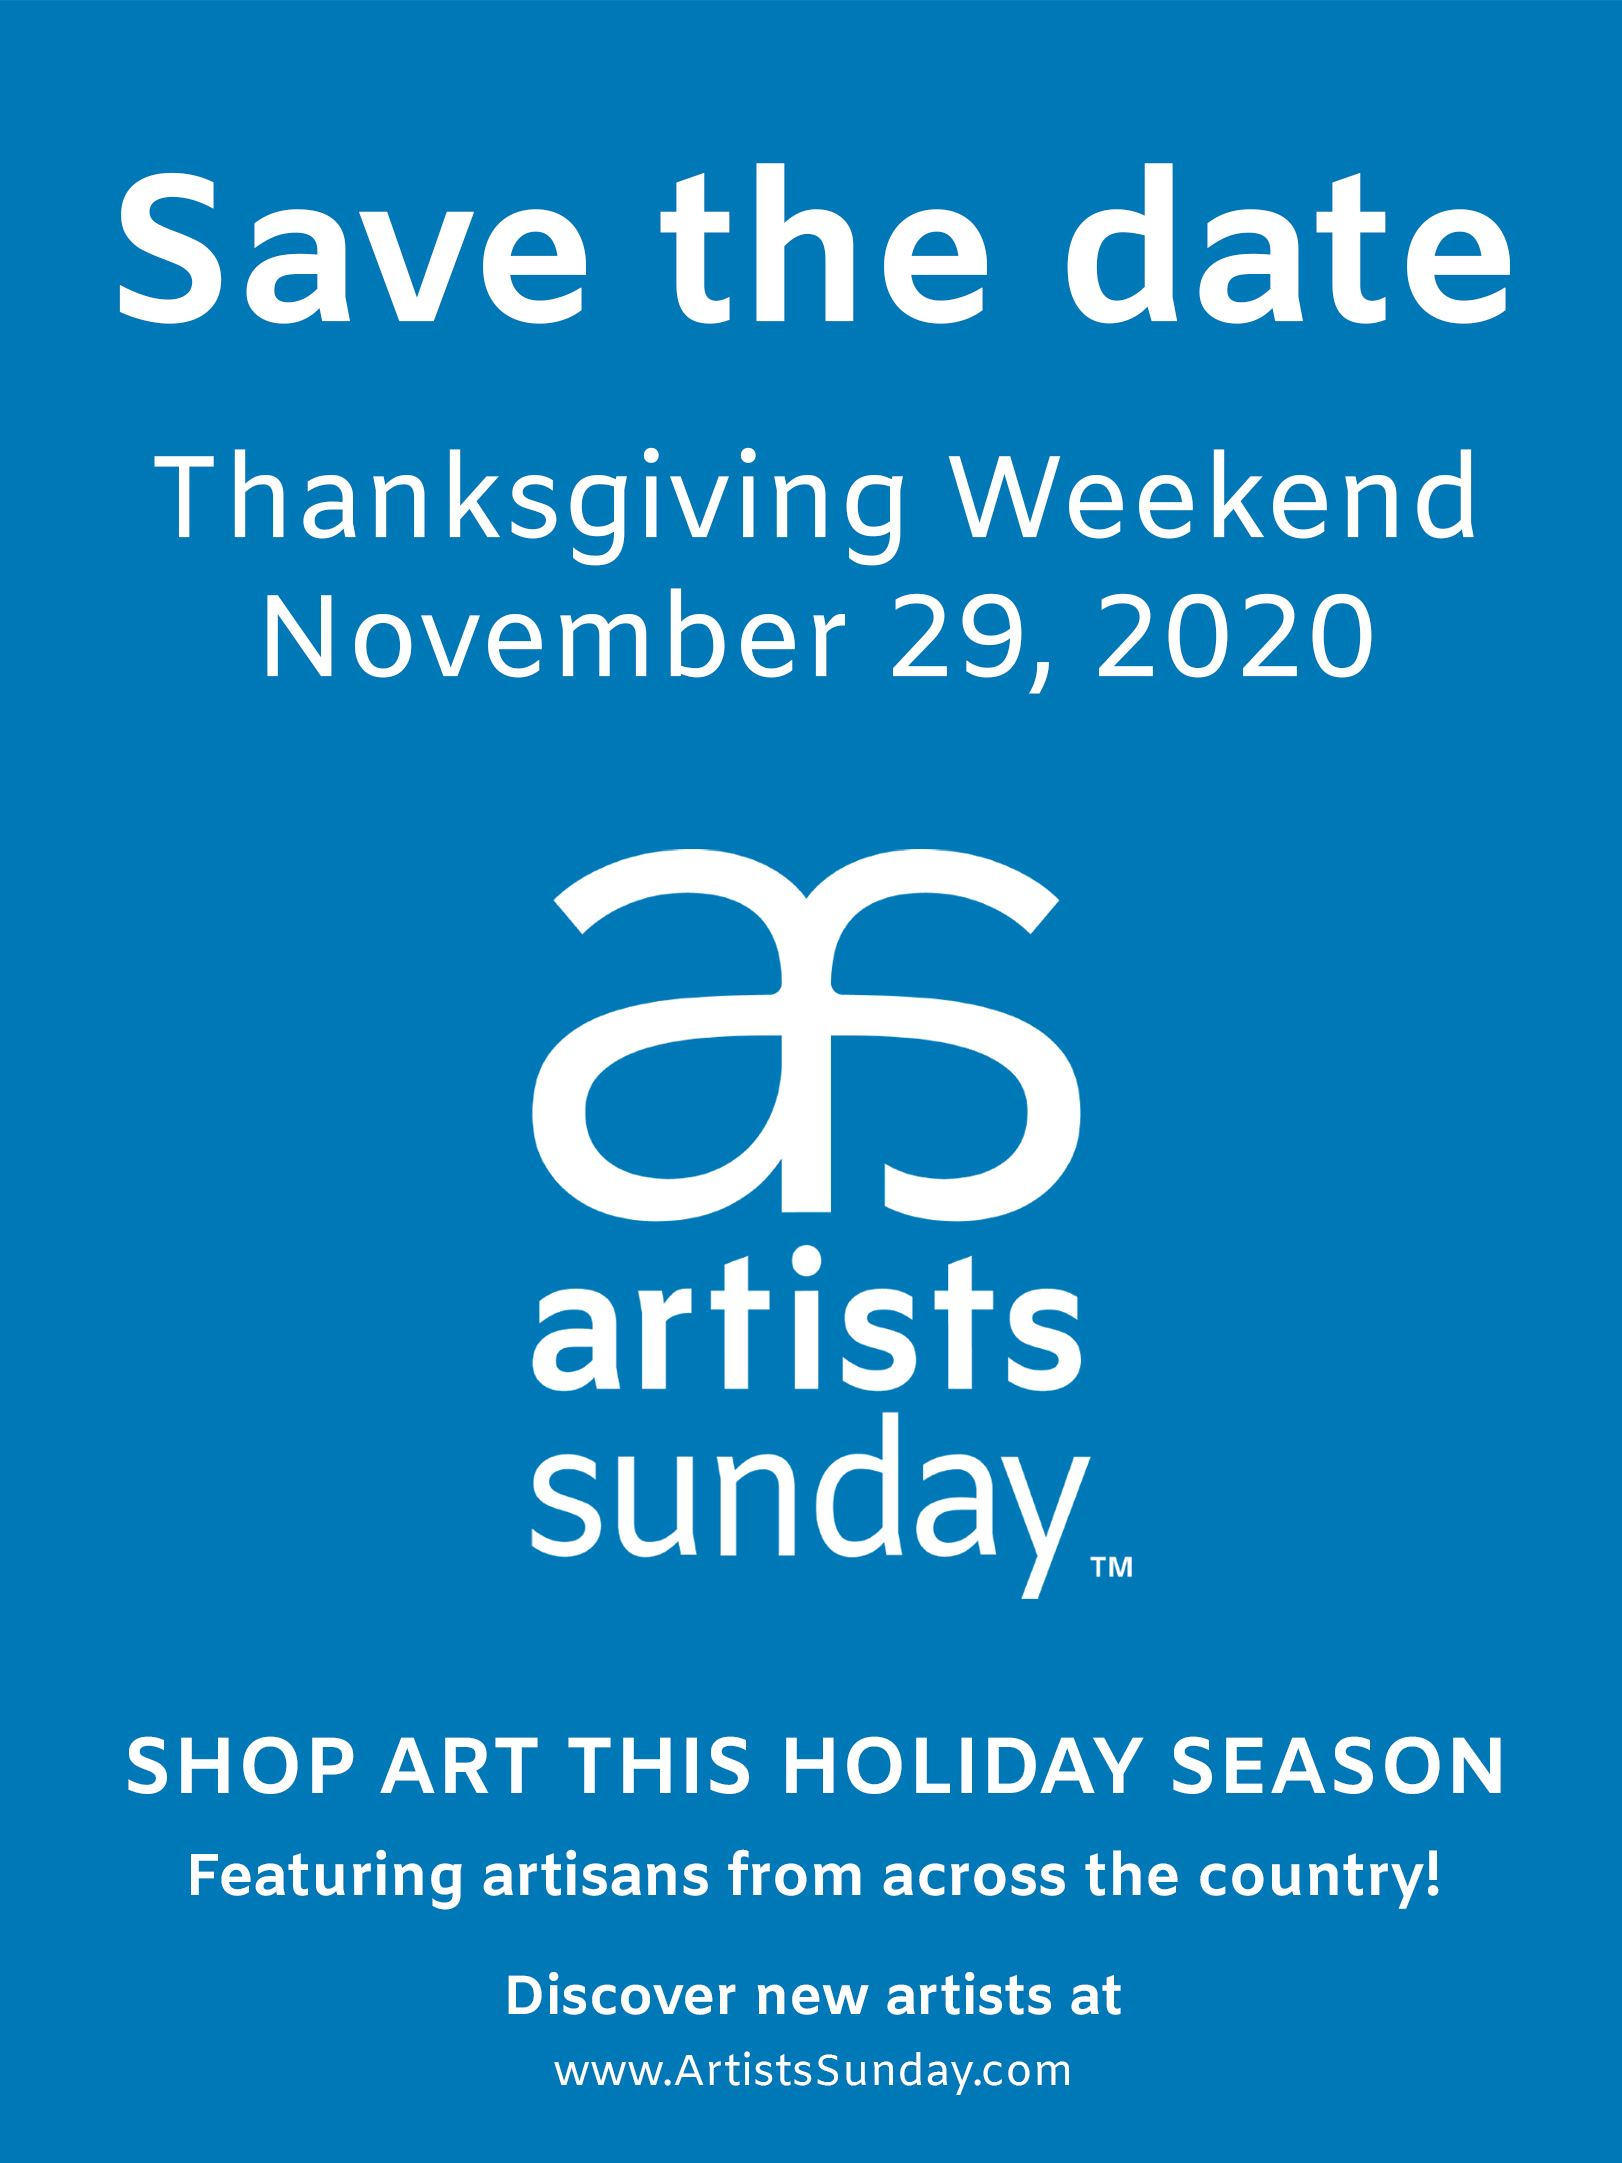 Save-the-date_Artists-Sunday_Vertical-white_on_blue_4x3